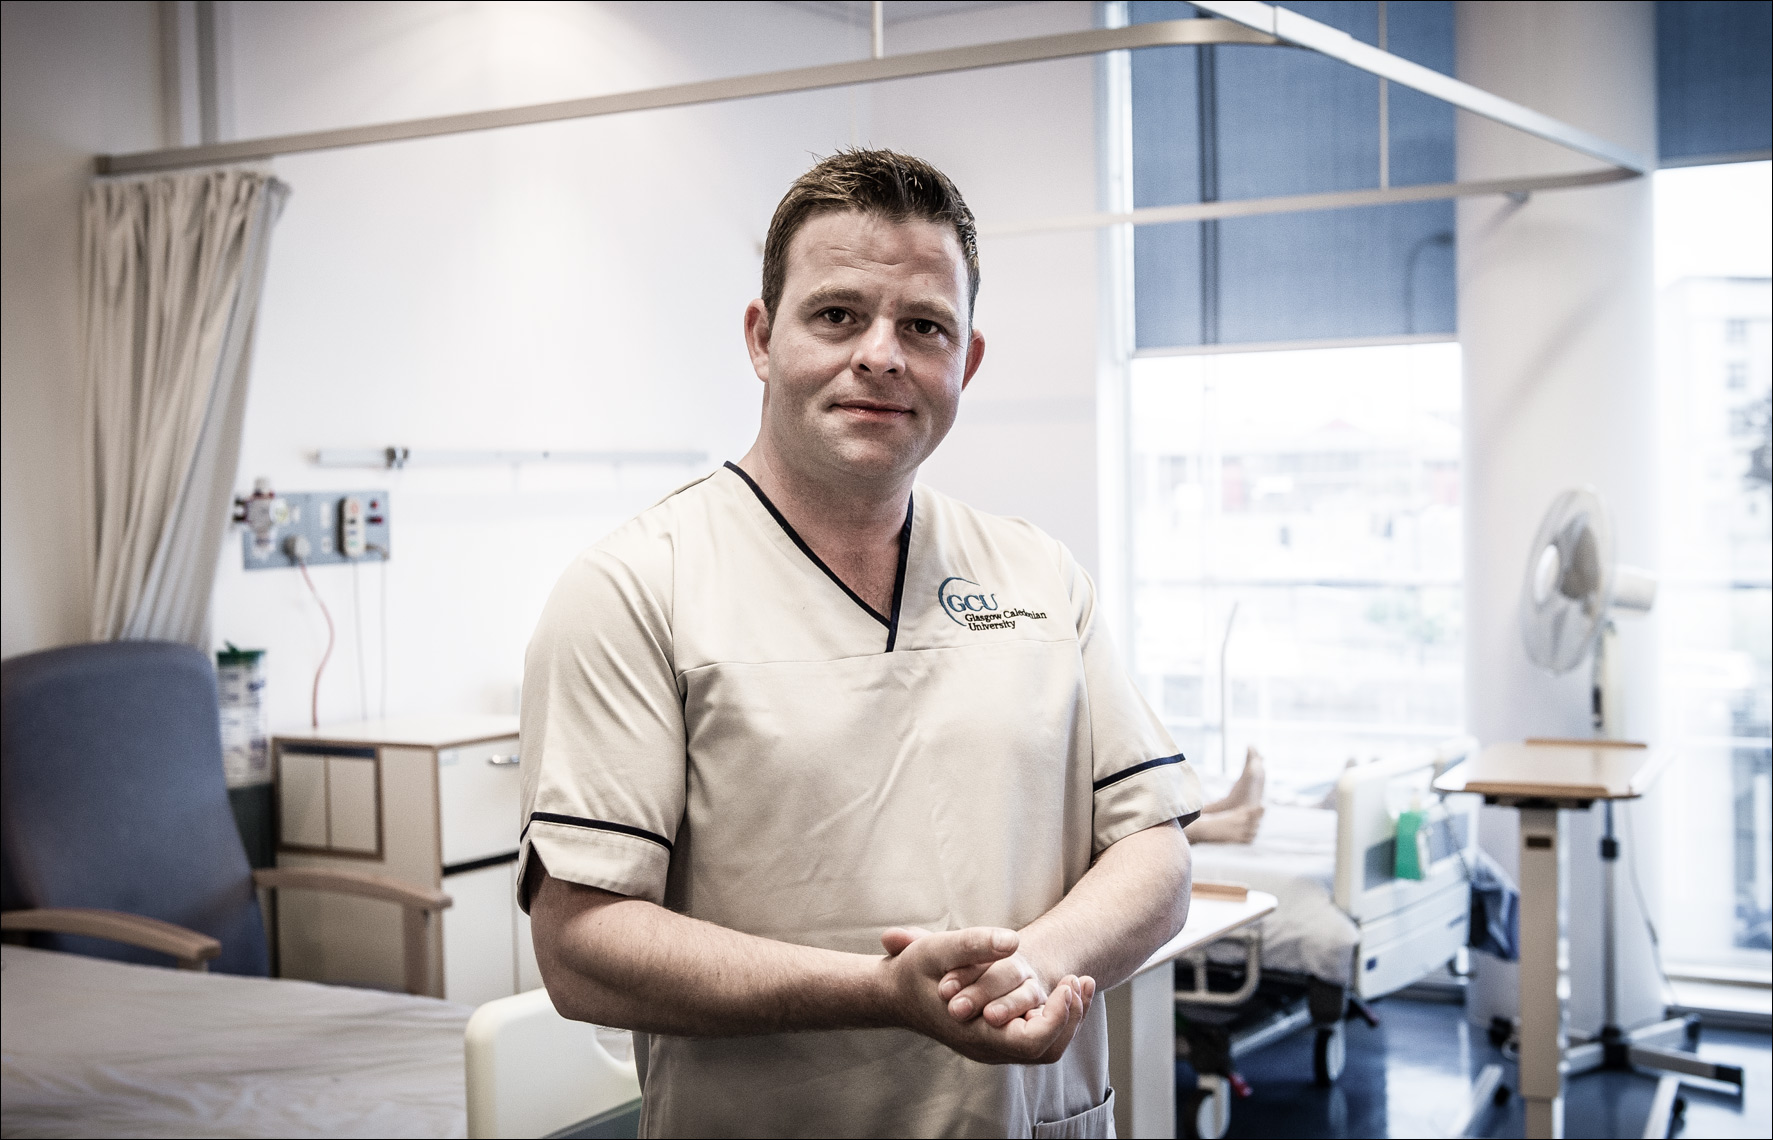 new GCU-Nursing-017940033 Glasgow Caledonian University Paul Hampton Photographer